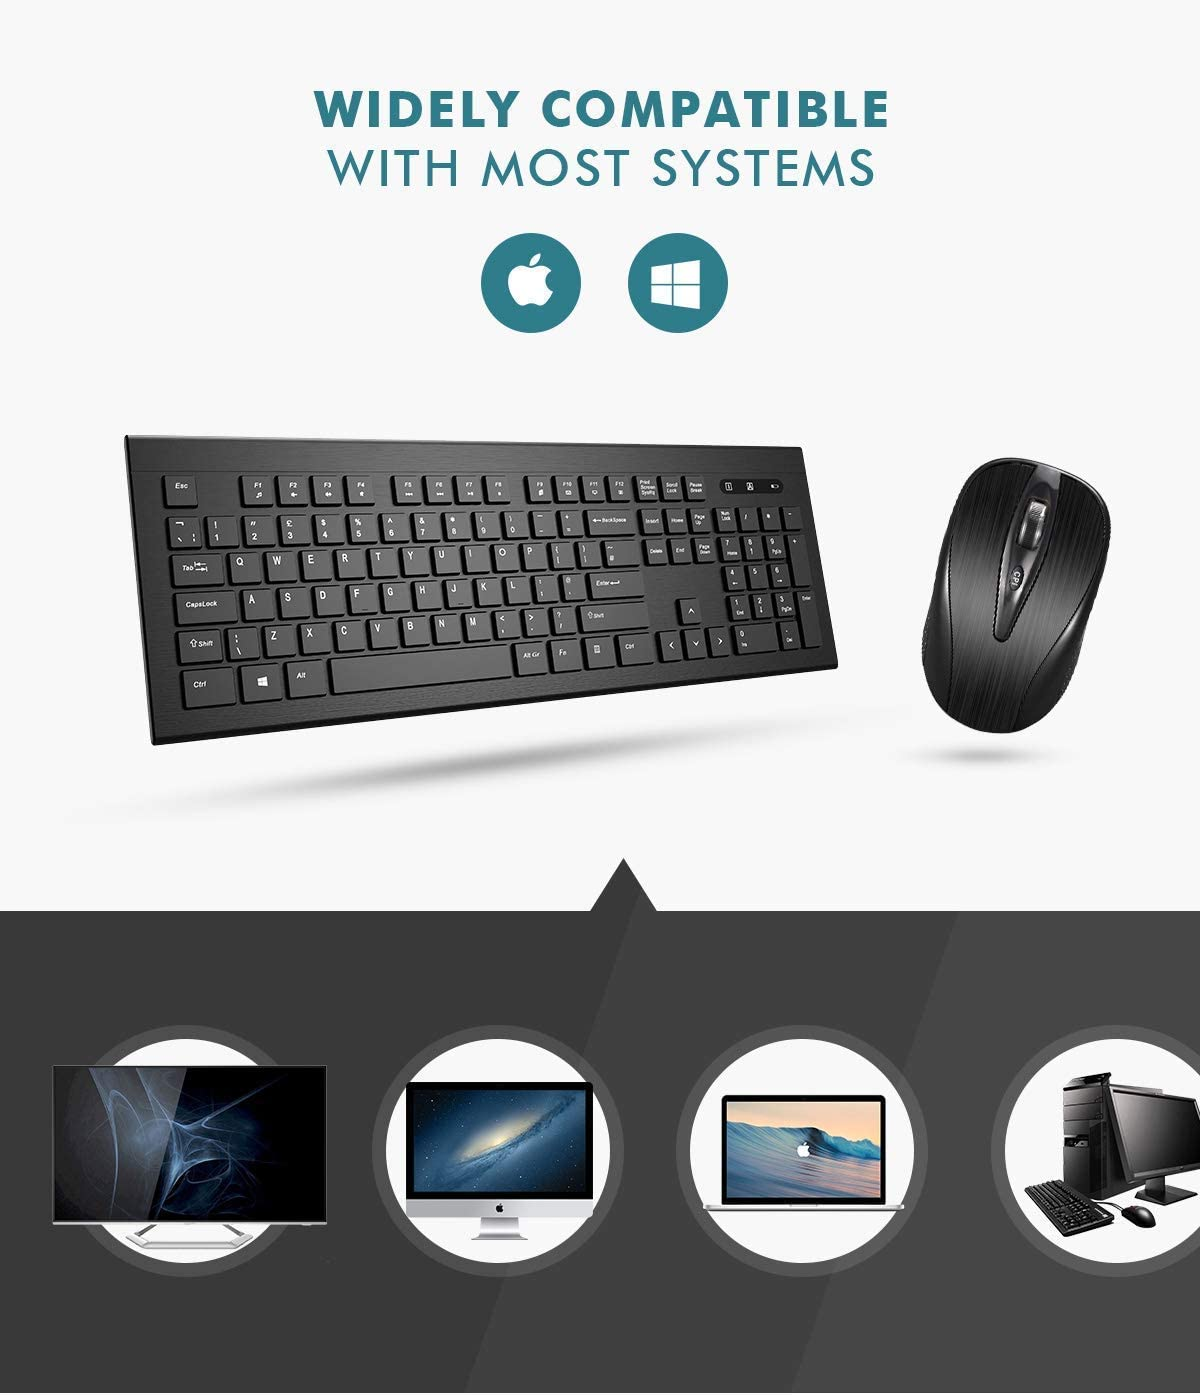 Black 2.4GHz 26ft Wireless Connection with USB Receiver for PC Desktop Computer Laptop Mac Tablet Ultra-Thin Chiclet Keyboard and Mute Mouse Wireless Keyboard and Mouse Combo